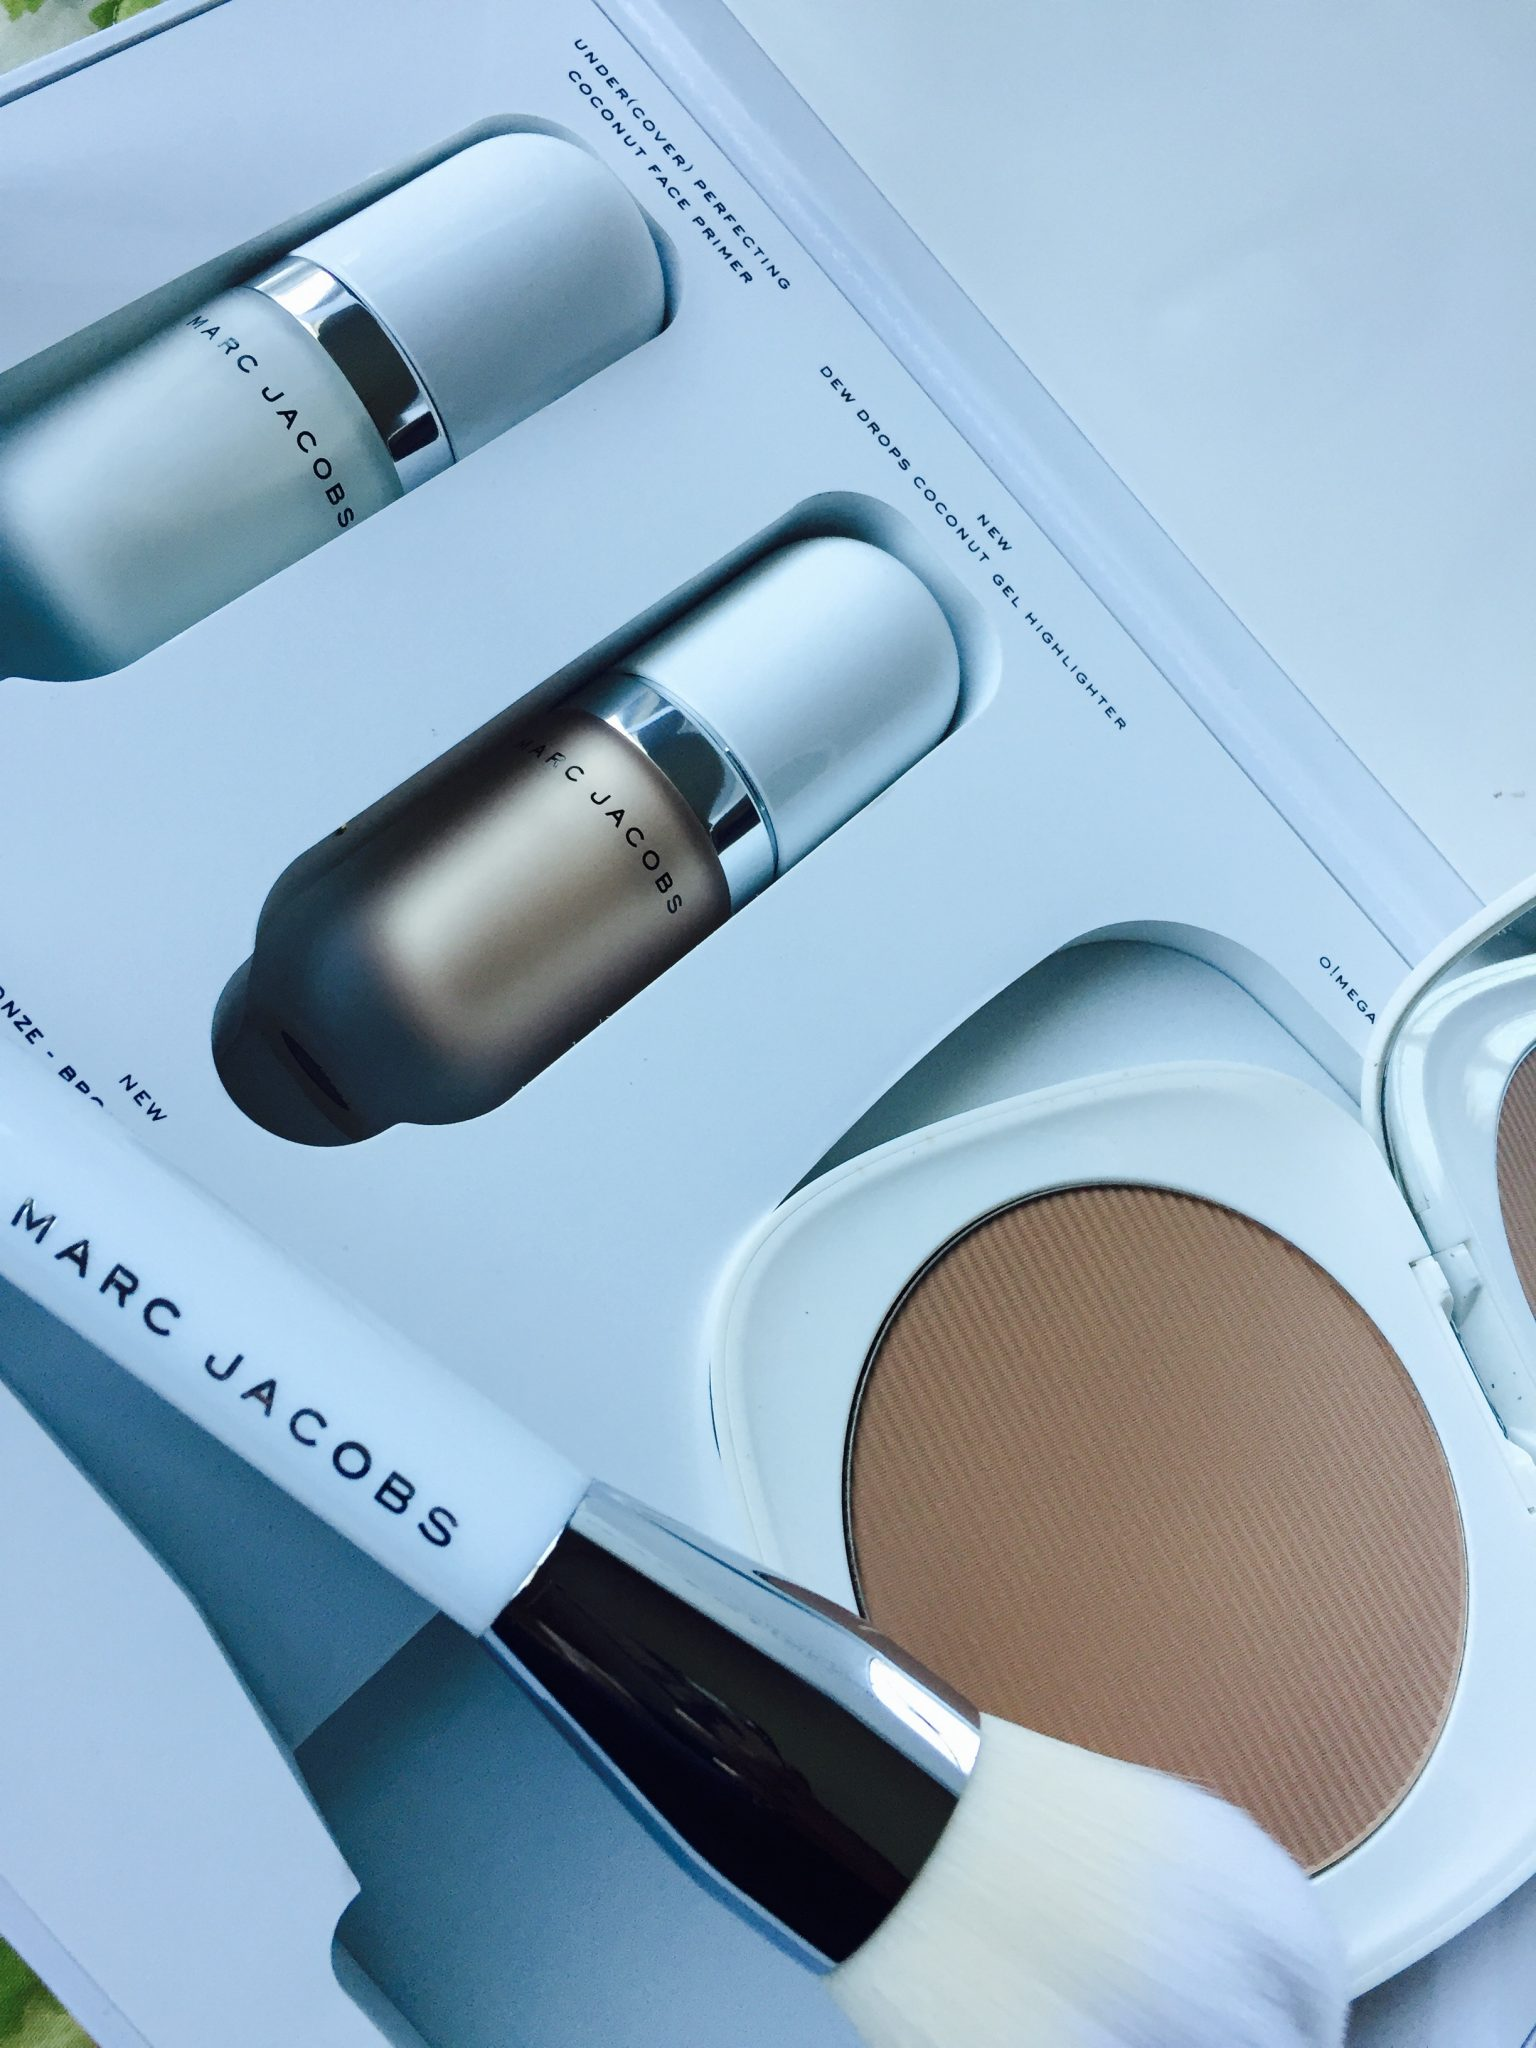 Marc Jacobs Coconut Perfection, Glowing Complexion